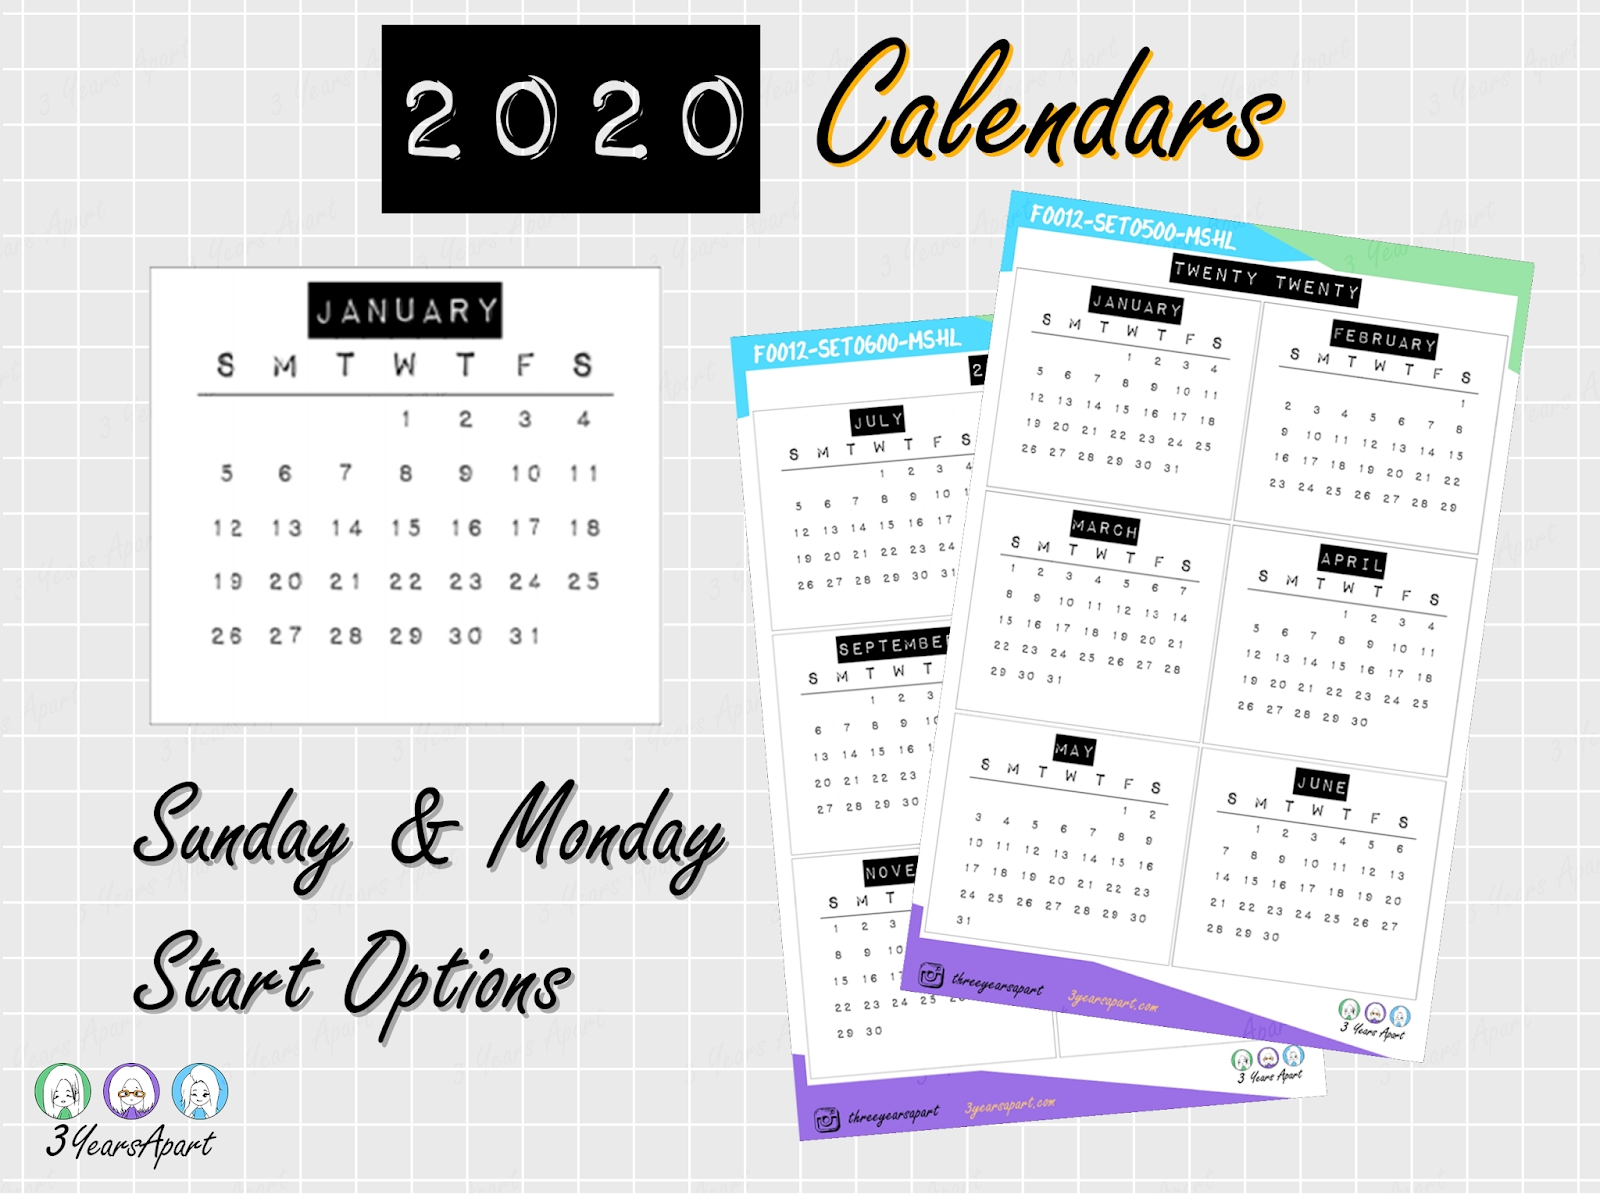 2020 Yearly Calendar Free Printable | Bullet Journal And throughout 8.5 X 11 Printable 2020 Calendar At A Glance